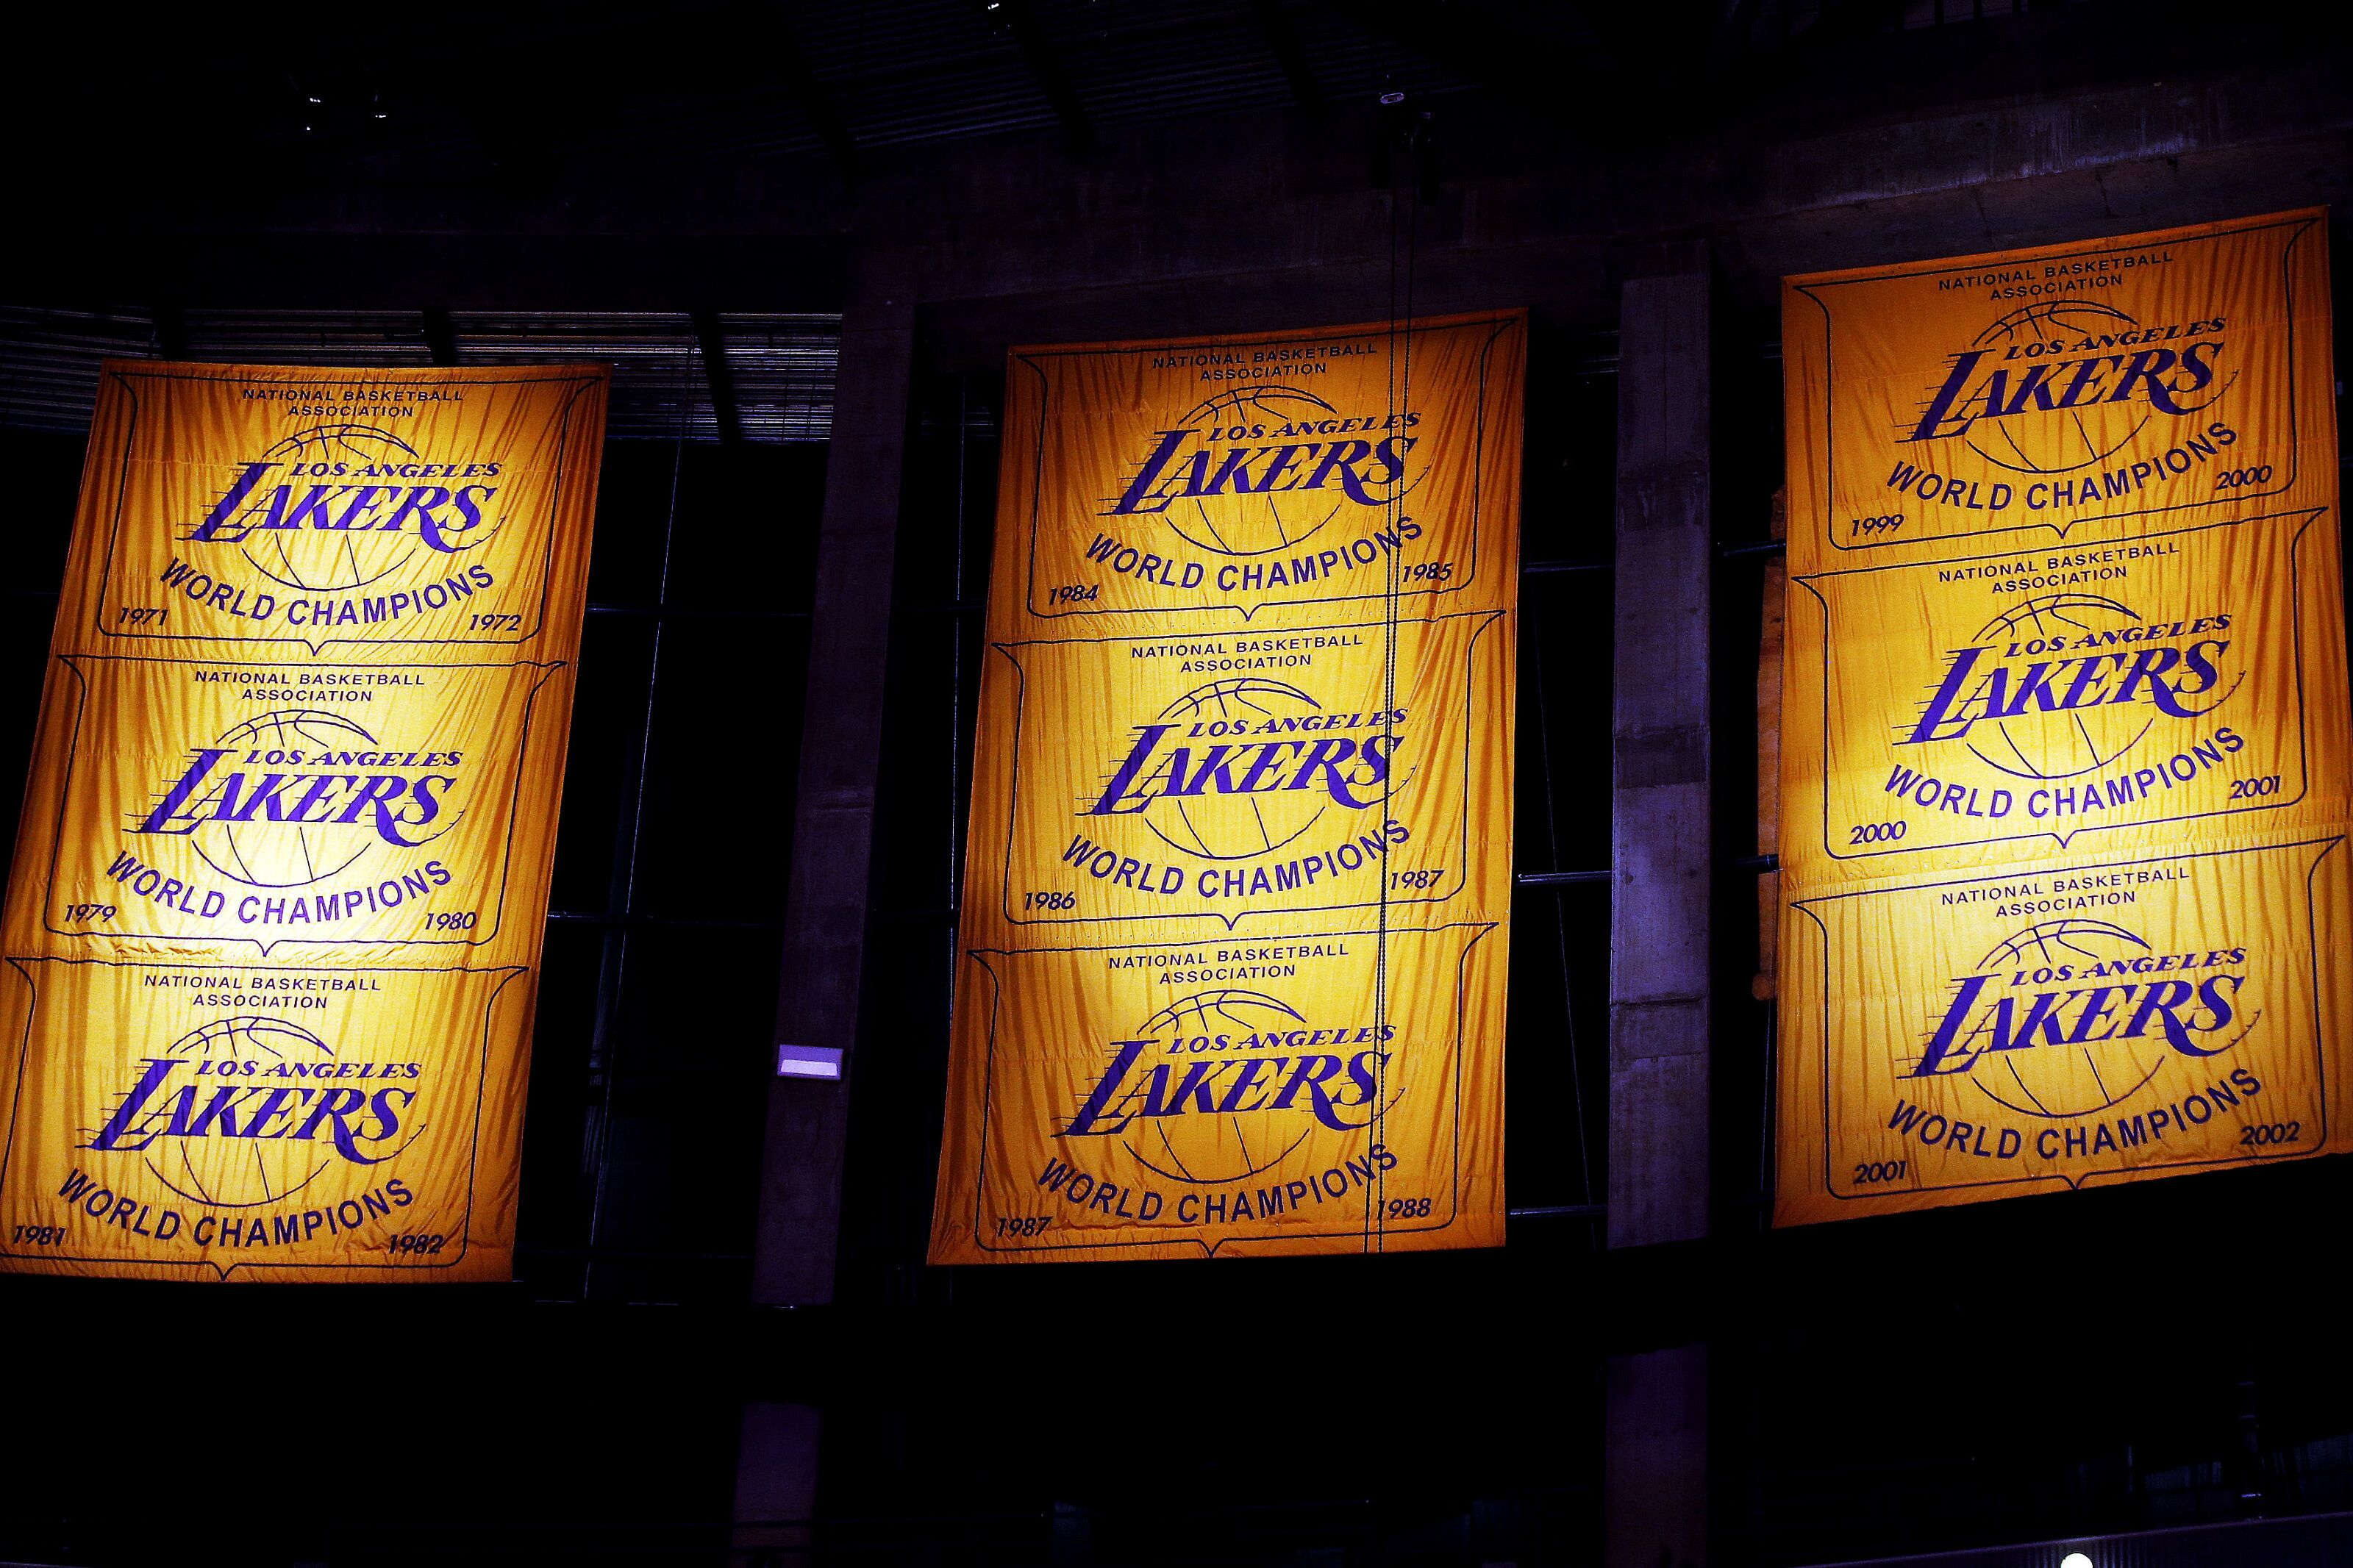 46b84d873c2c0 Los Angeles Lakers  40 greatest players in franchise history - Page 13